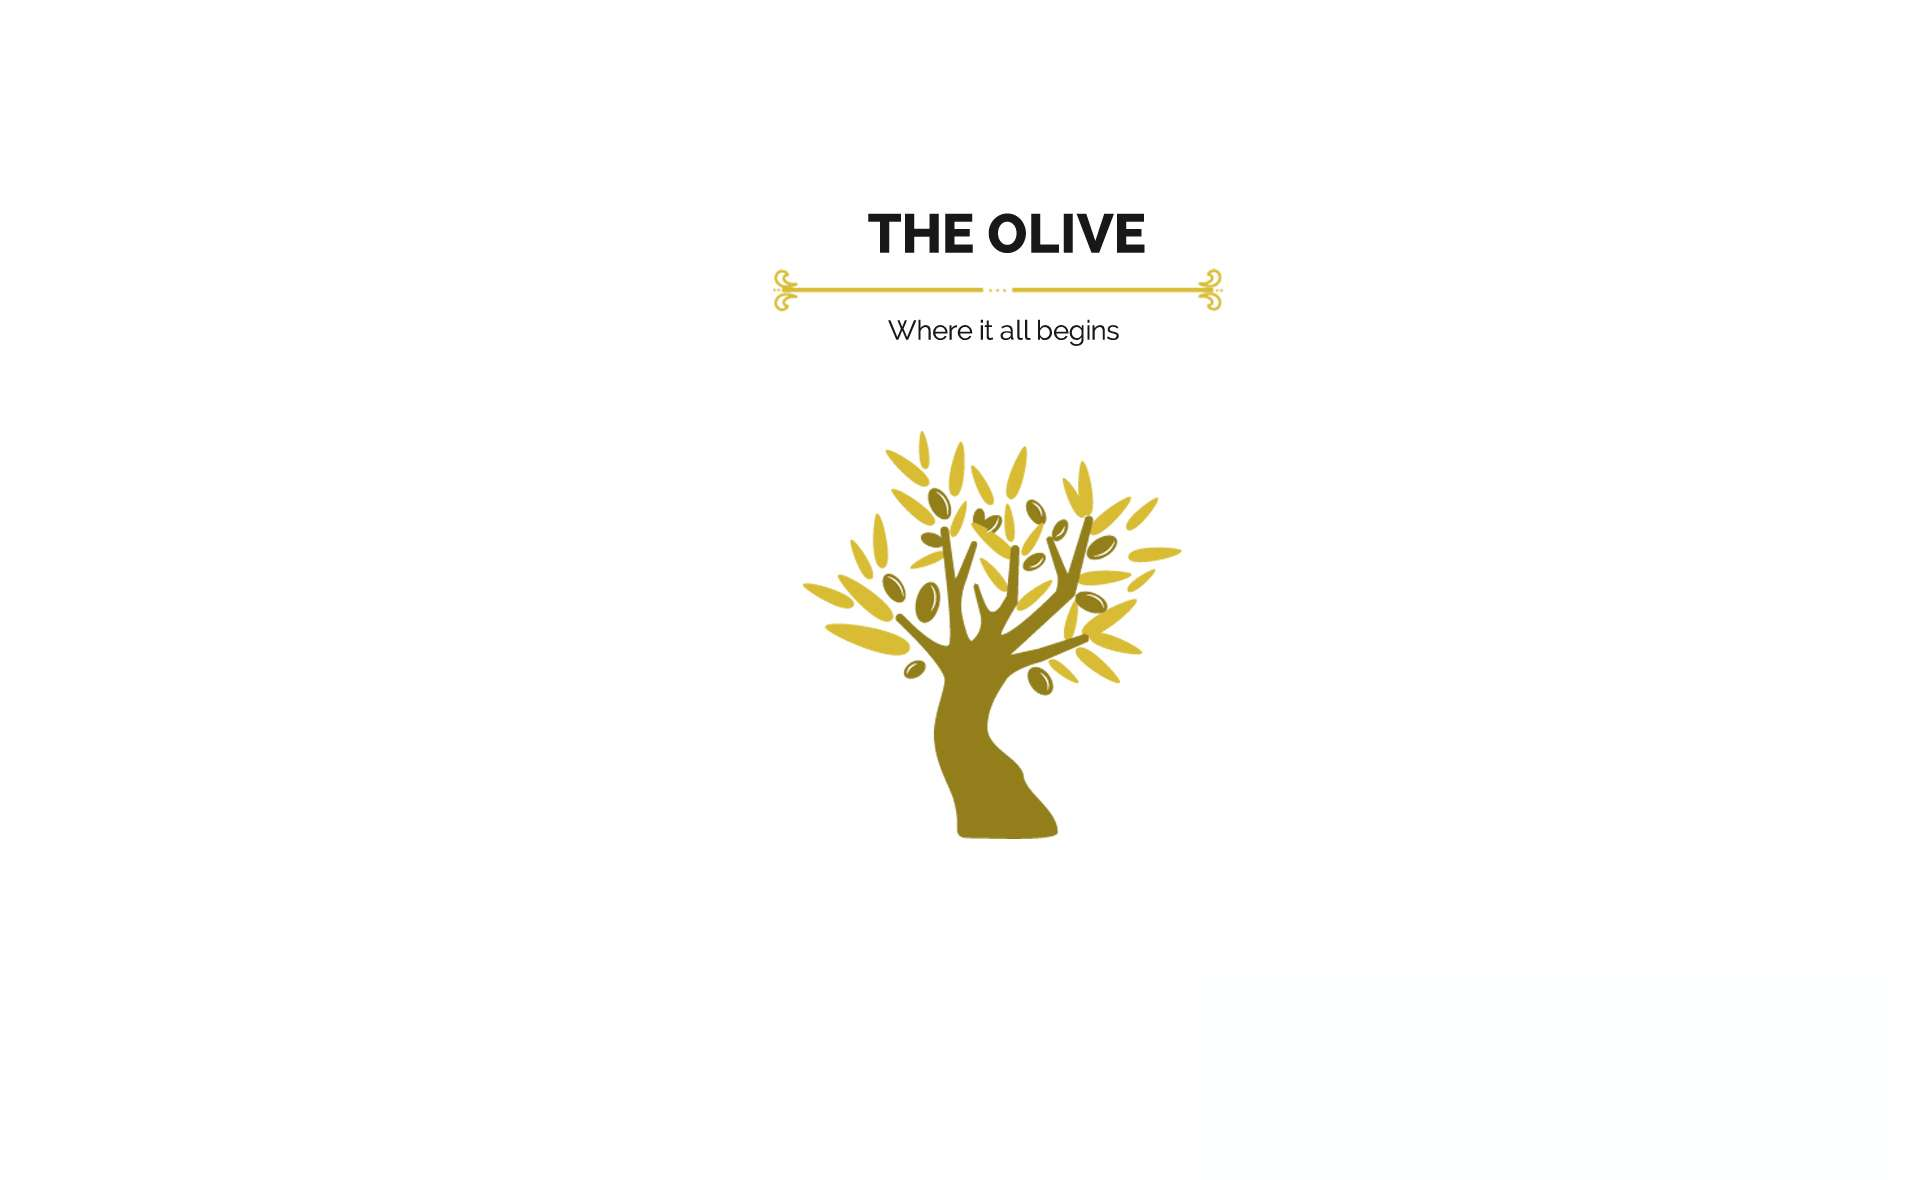 olive oil comes from the olive tree